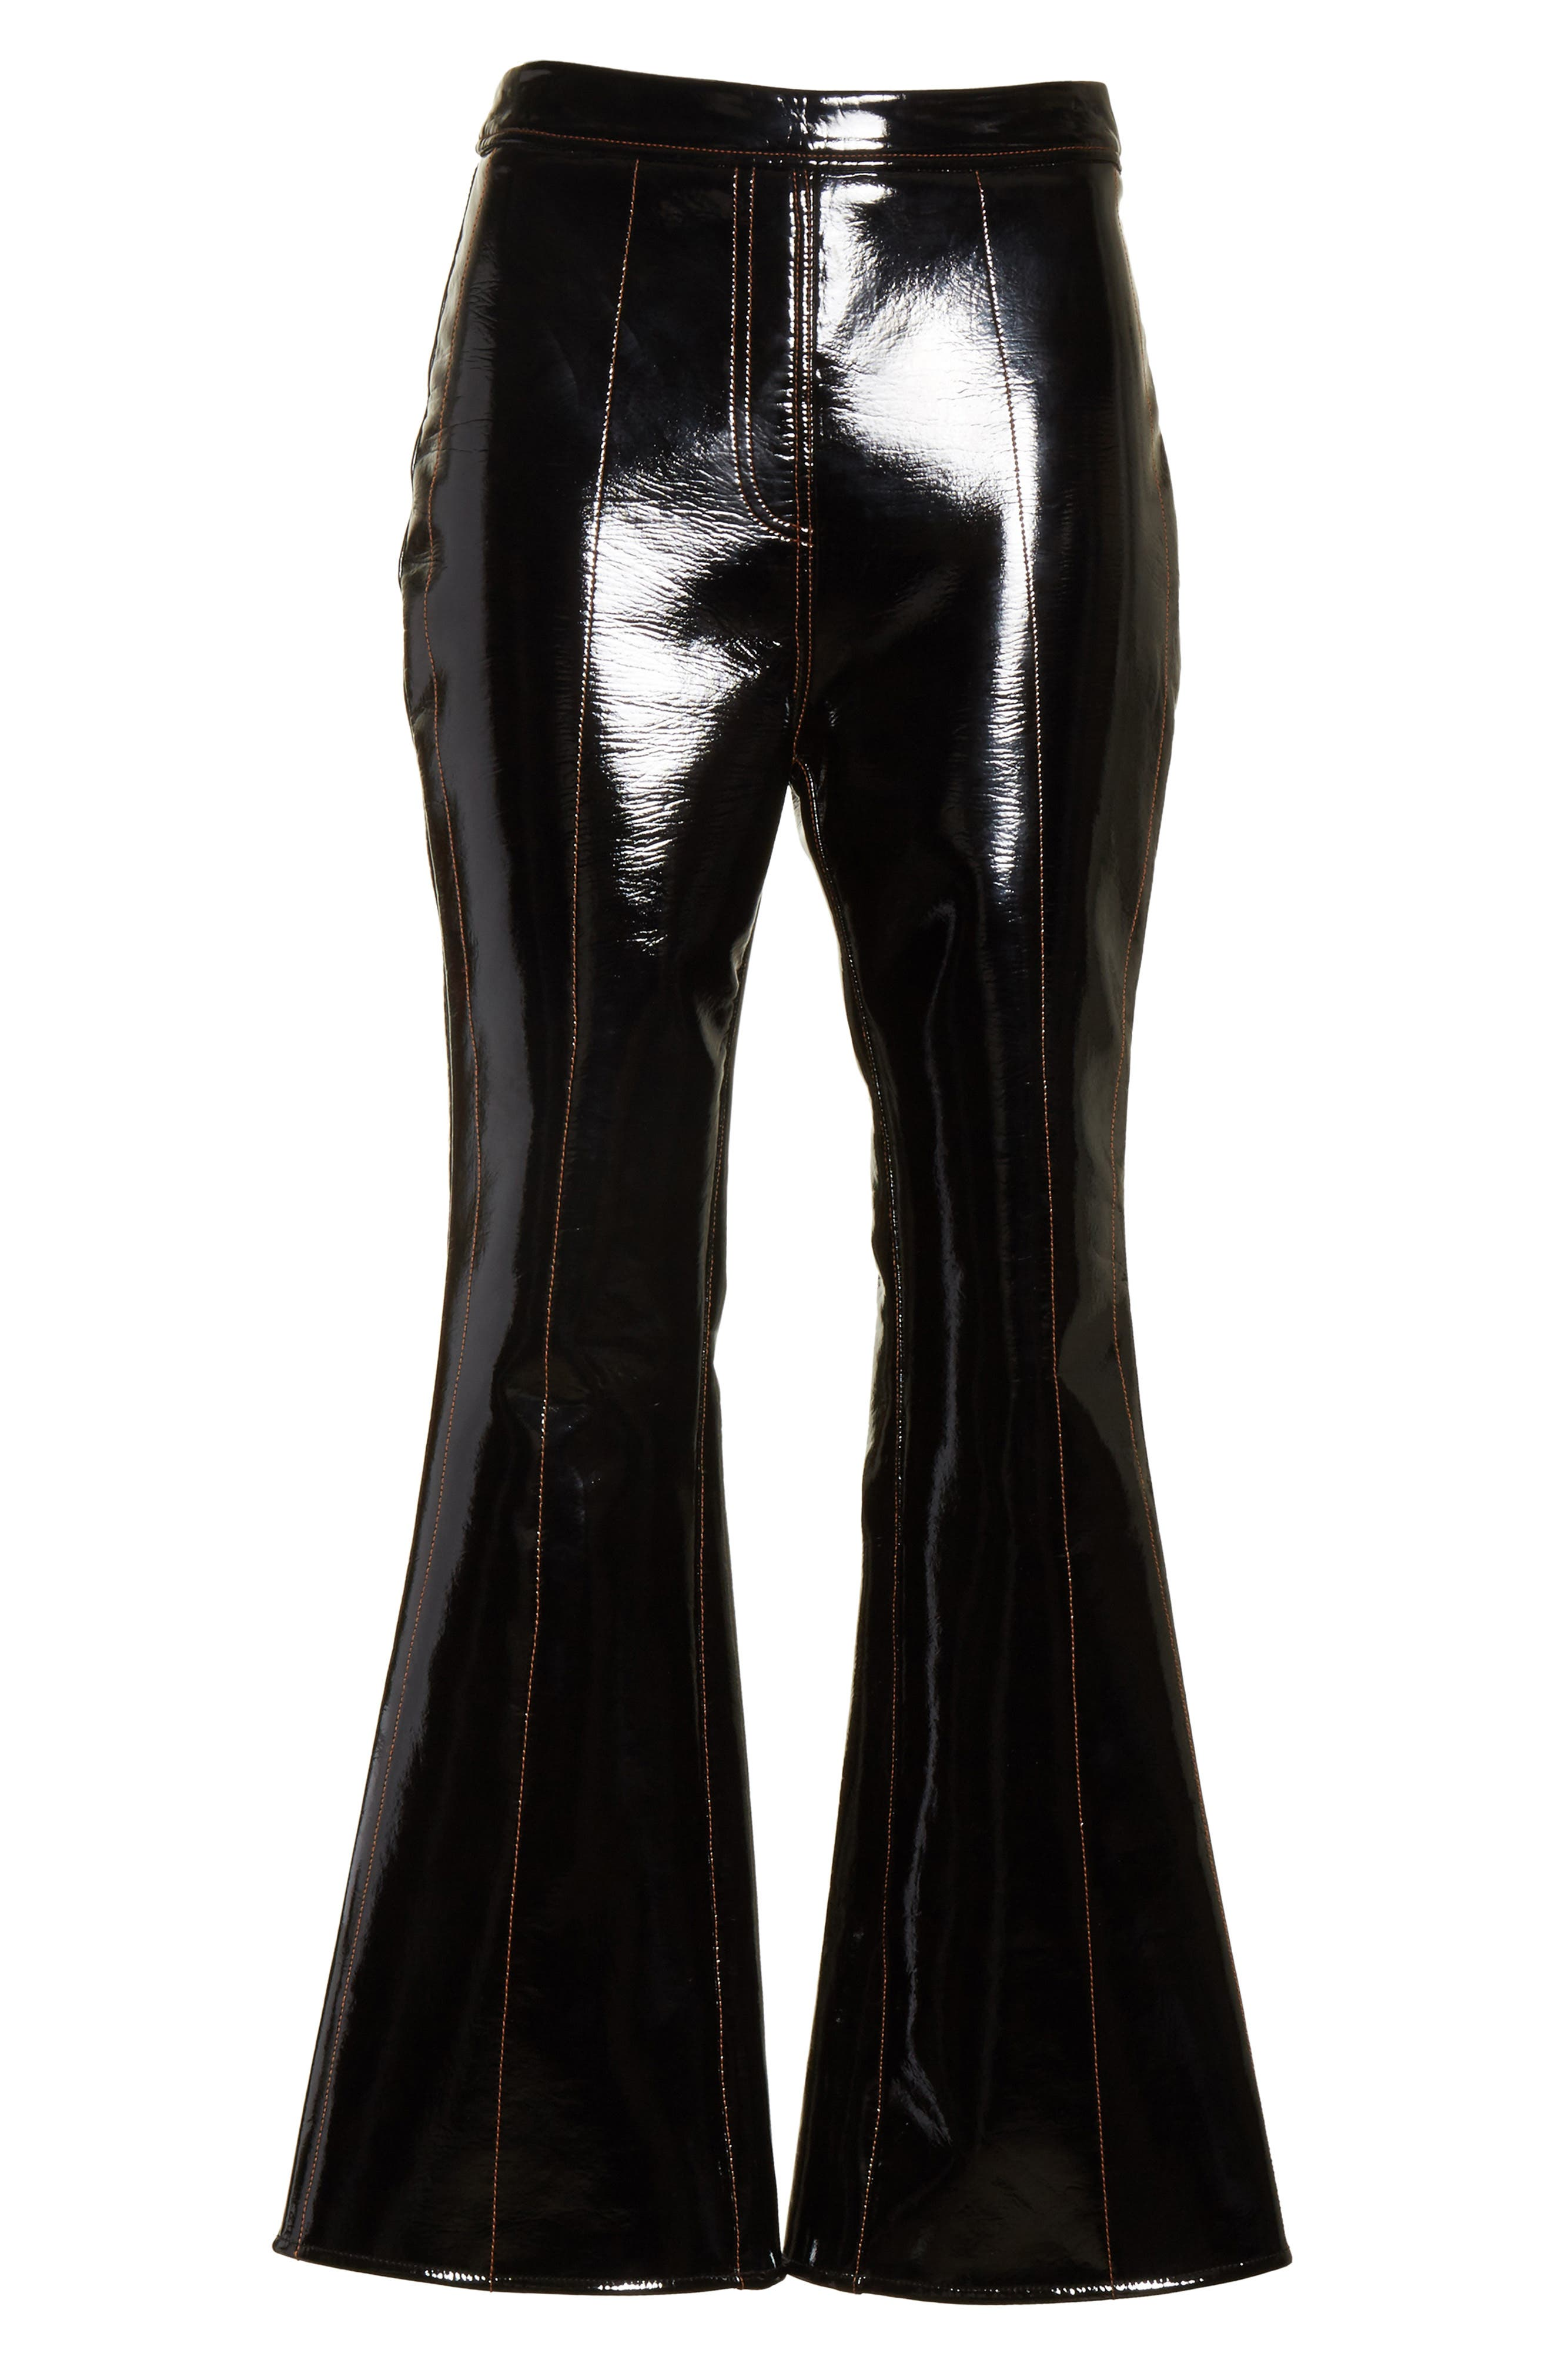 Outlaw Topstitched Crop Flare PVC Pants,                             Alternate thumbnail 6, color,                             Black